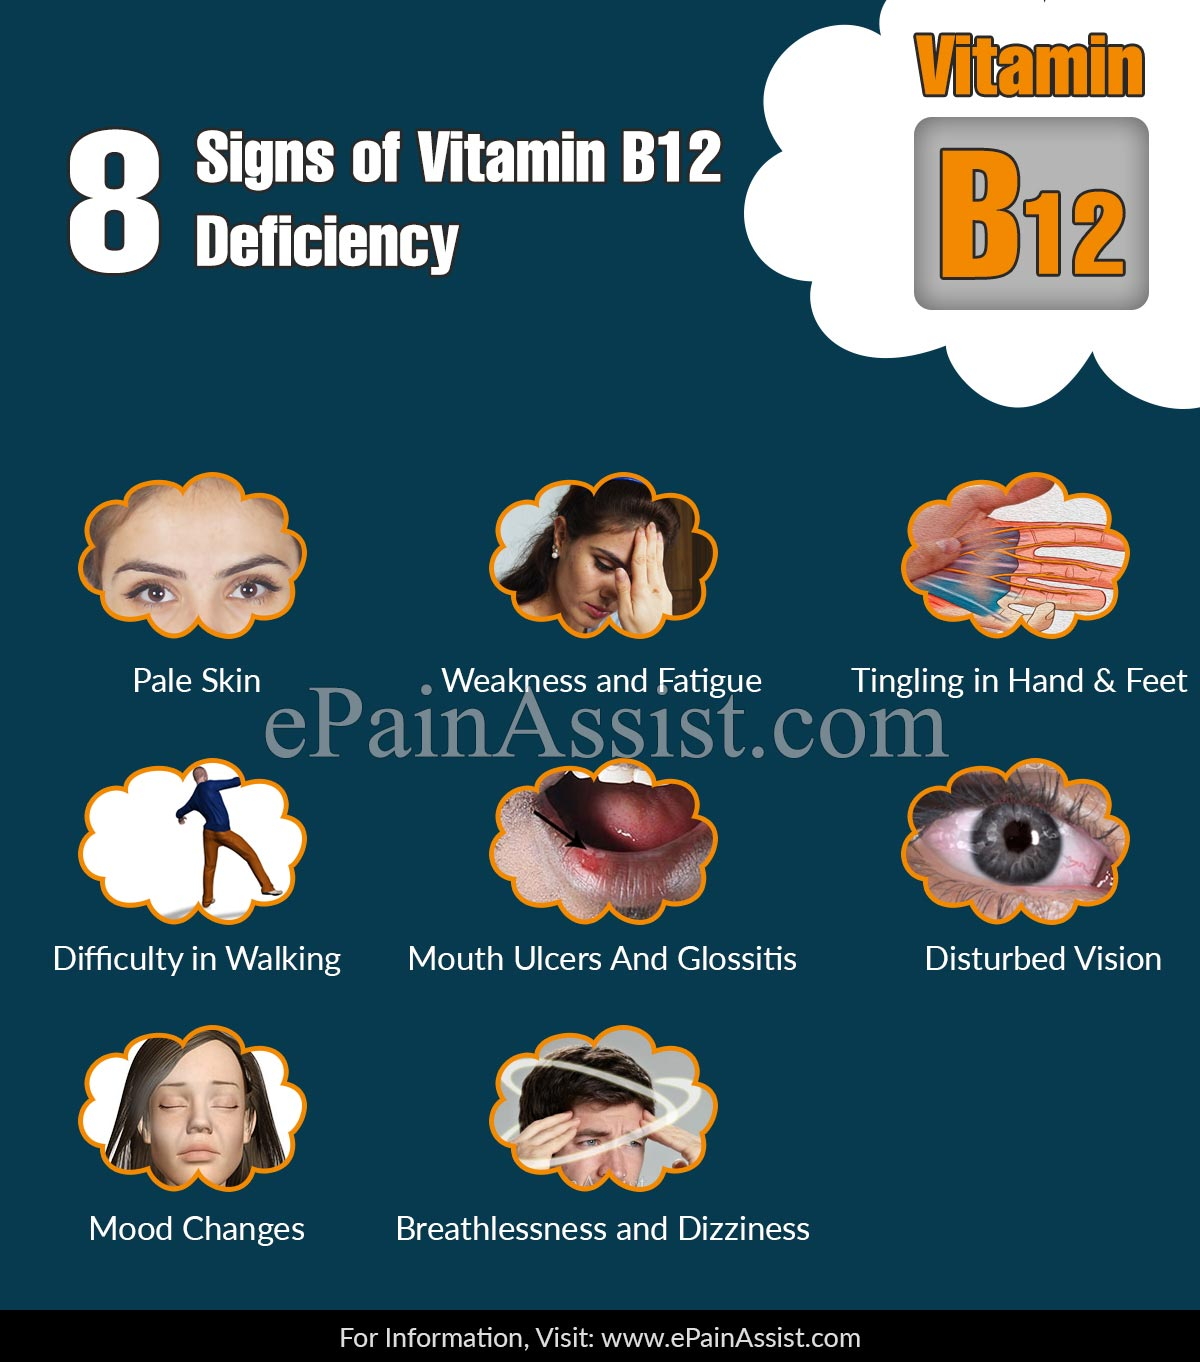 8 Signs of Vitamin B12 Deficiency